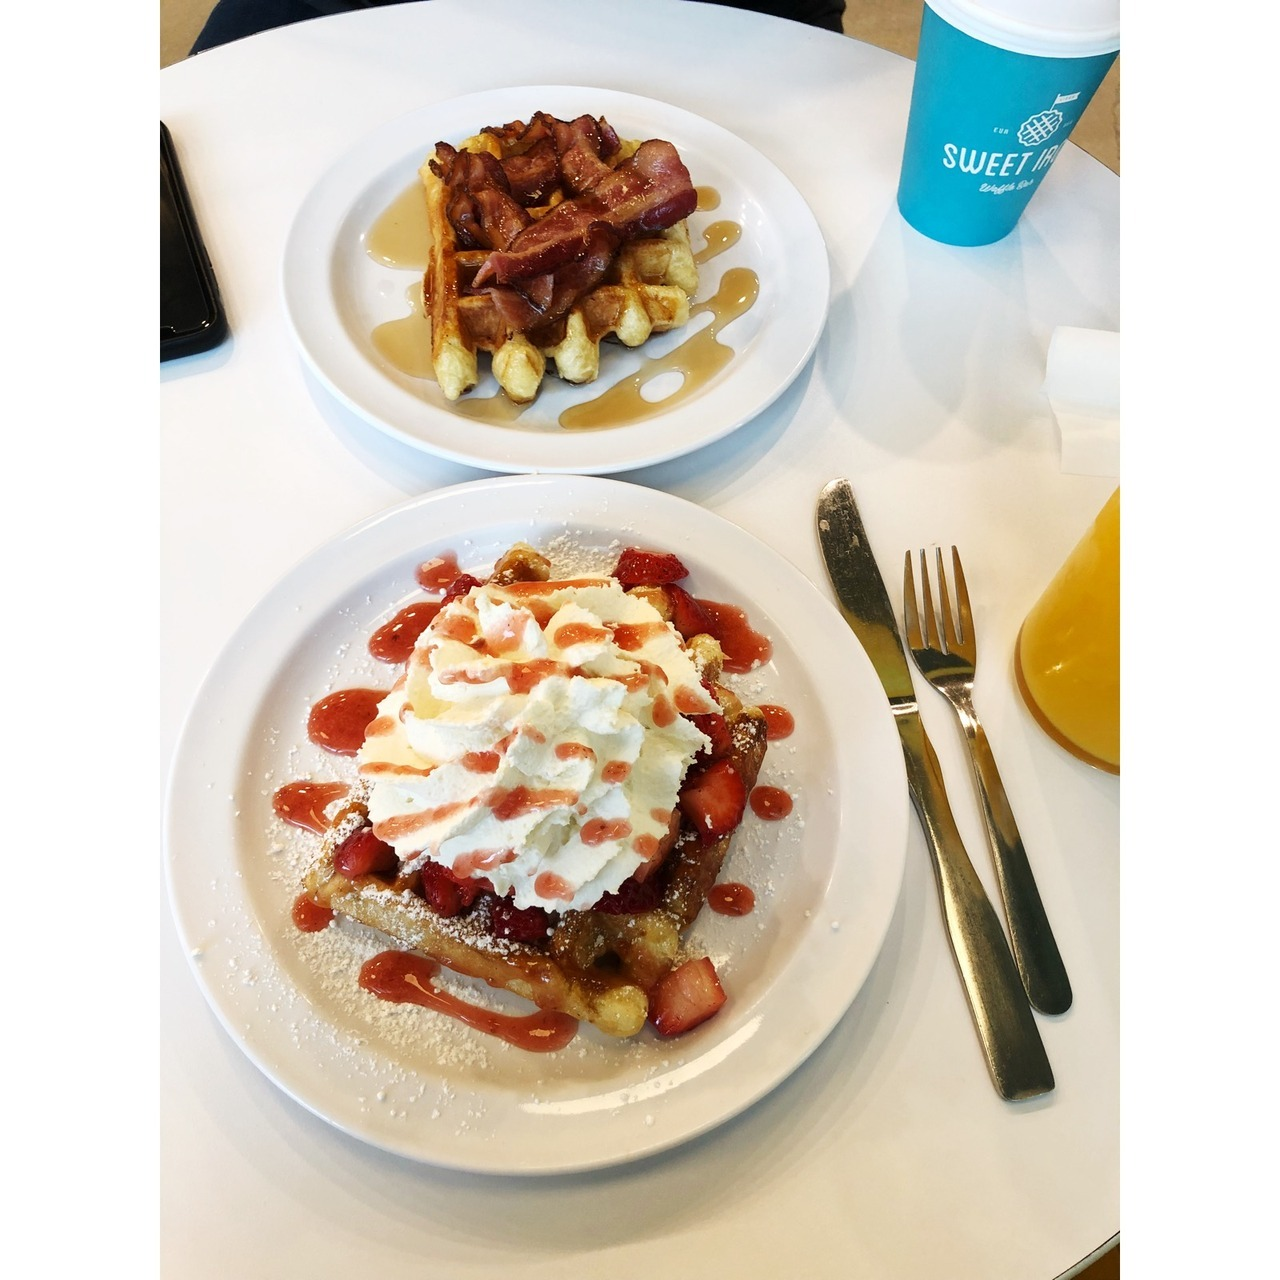 Hungry?!? Us too!  Eat up this Waffle Wednesday!